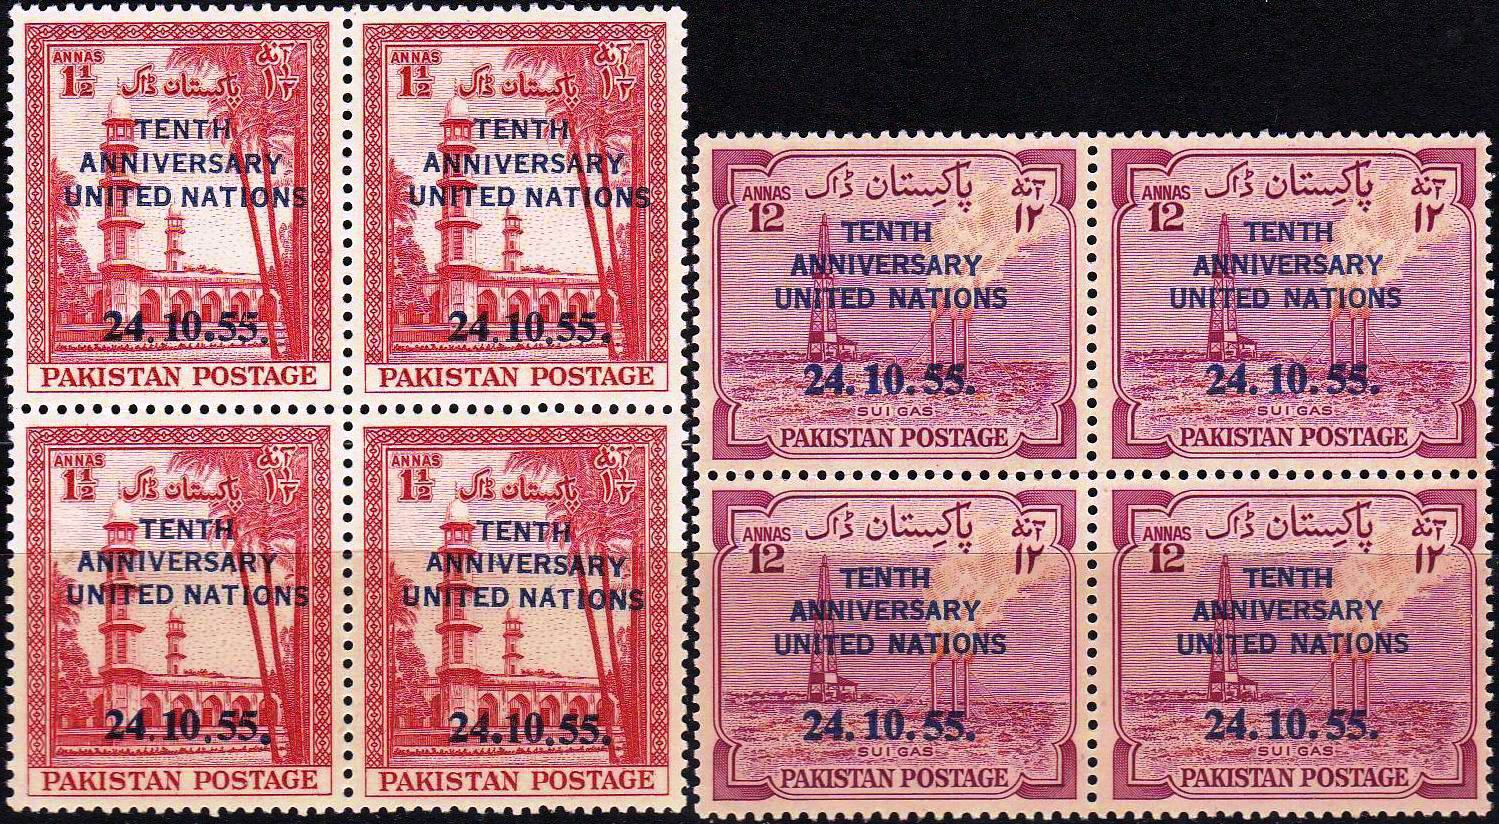 Pakistan Stamps 1955 Tenth Anniversary United Nations